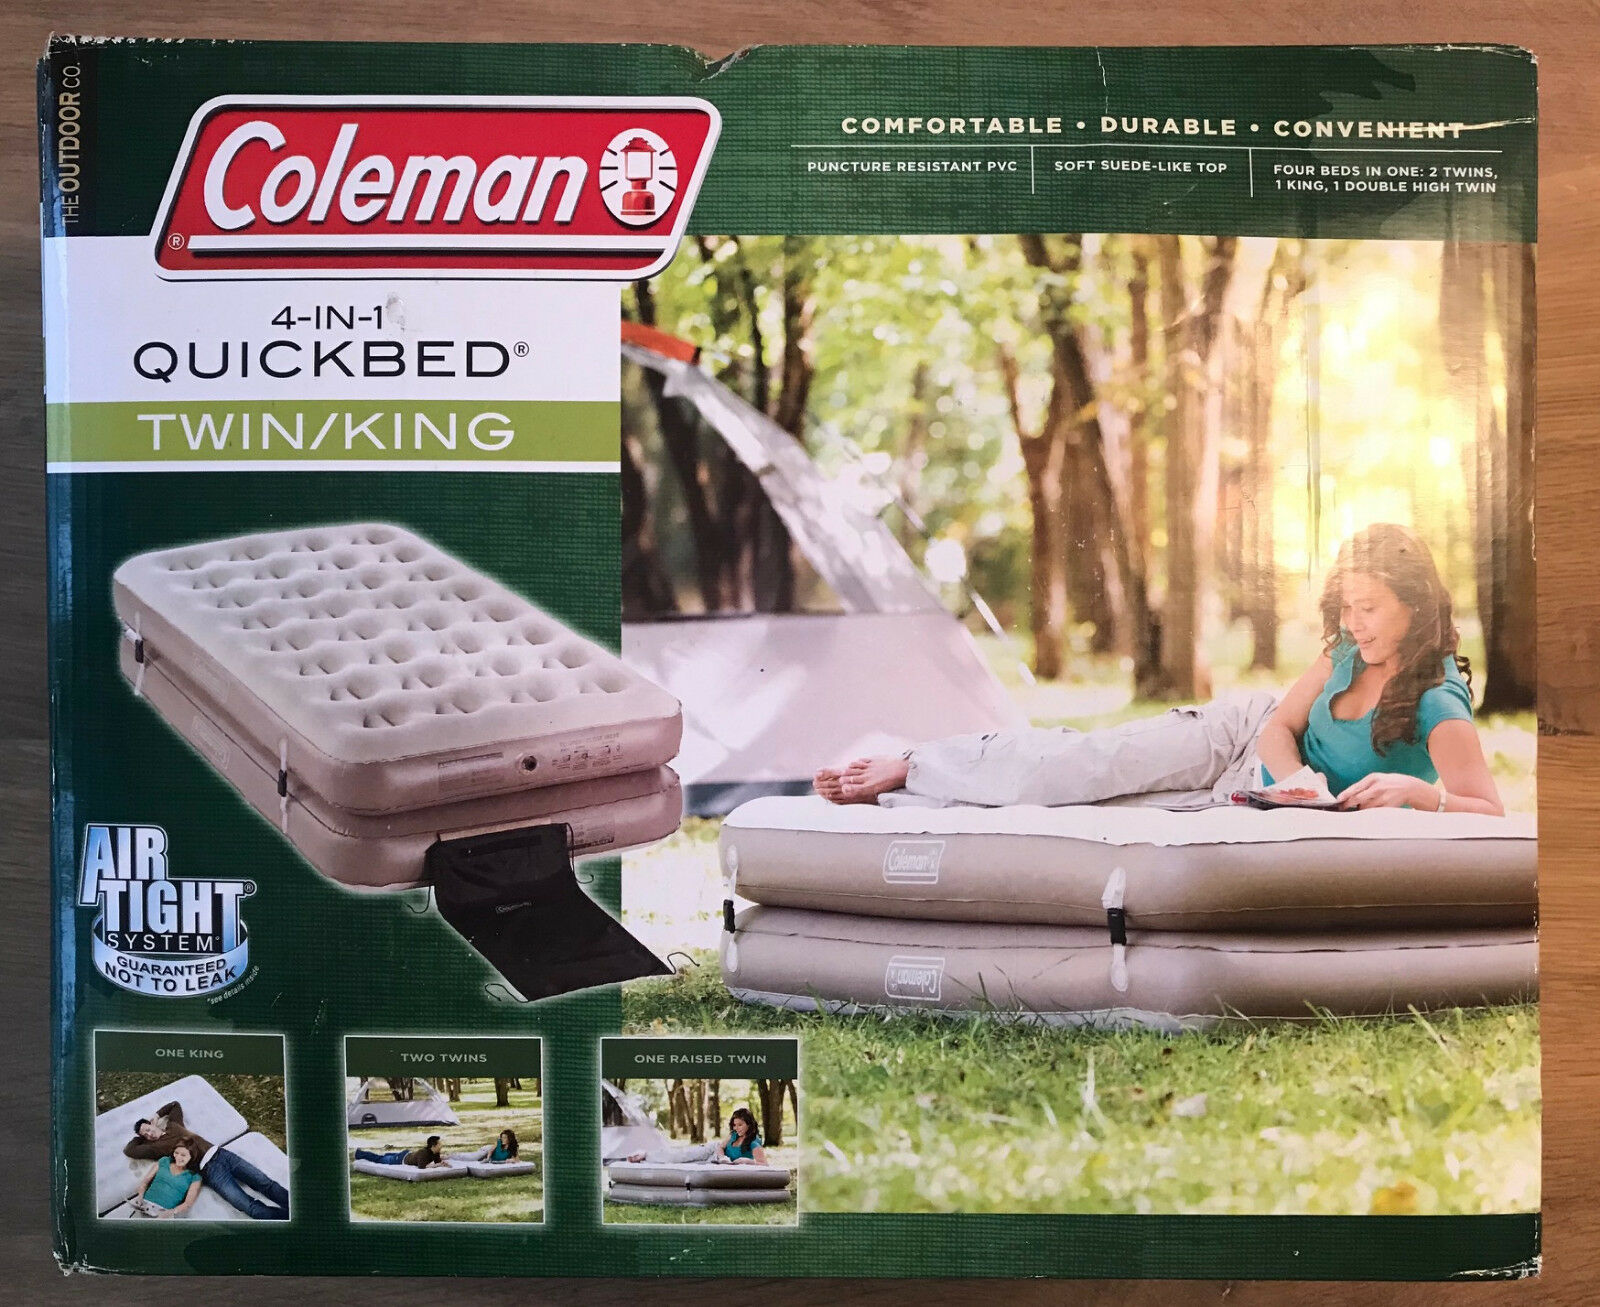 Coleman 4-IN-1 QUICKBED TWIN/KING - One King - Two Twin - On